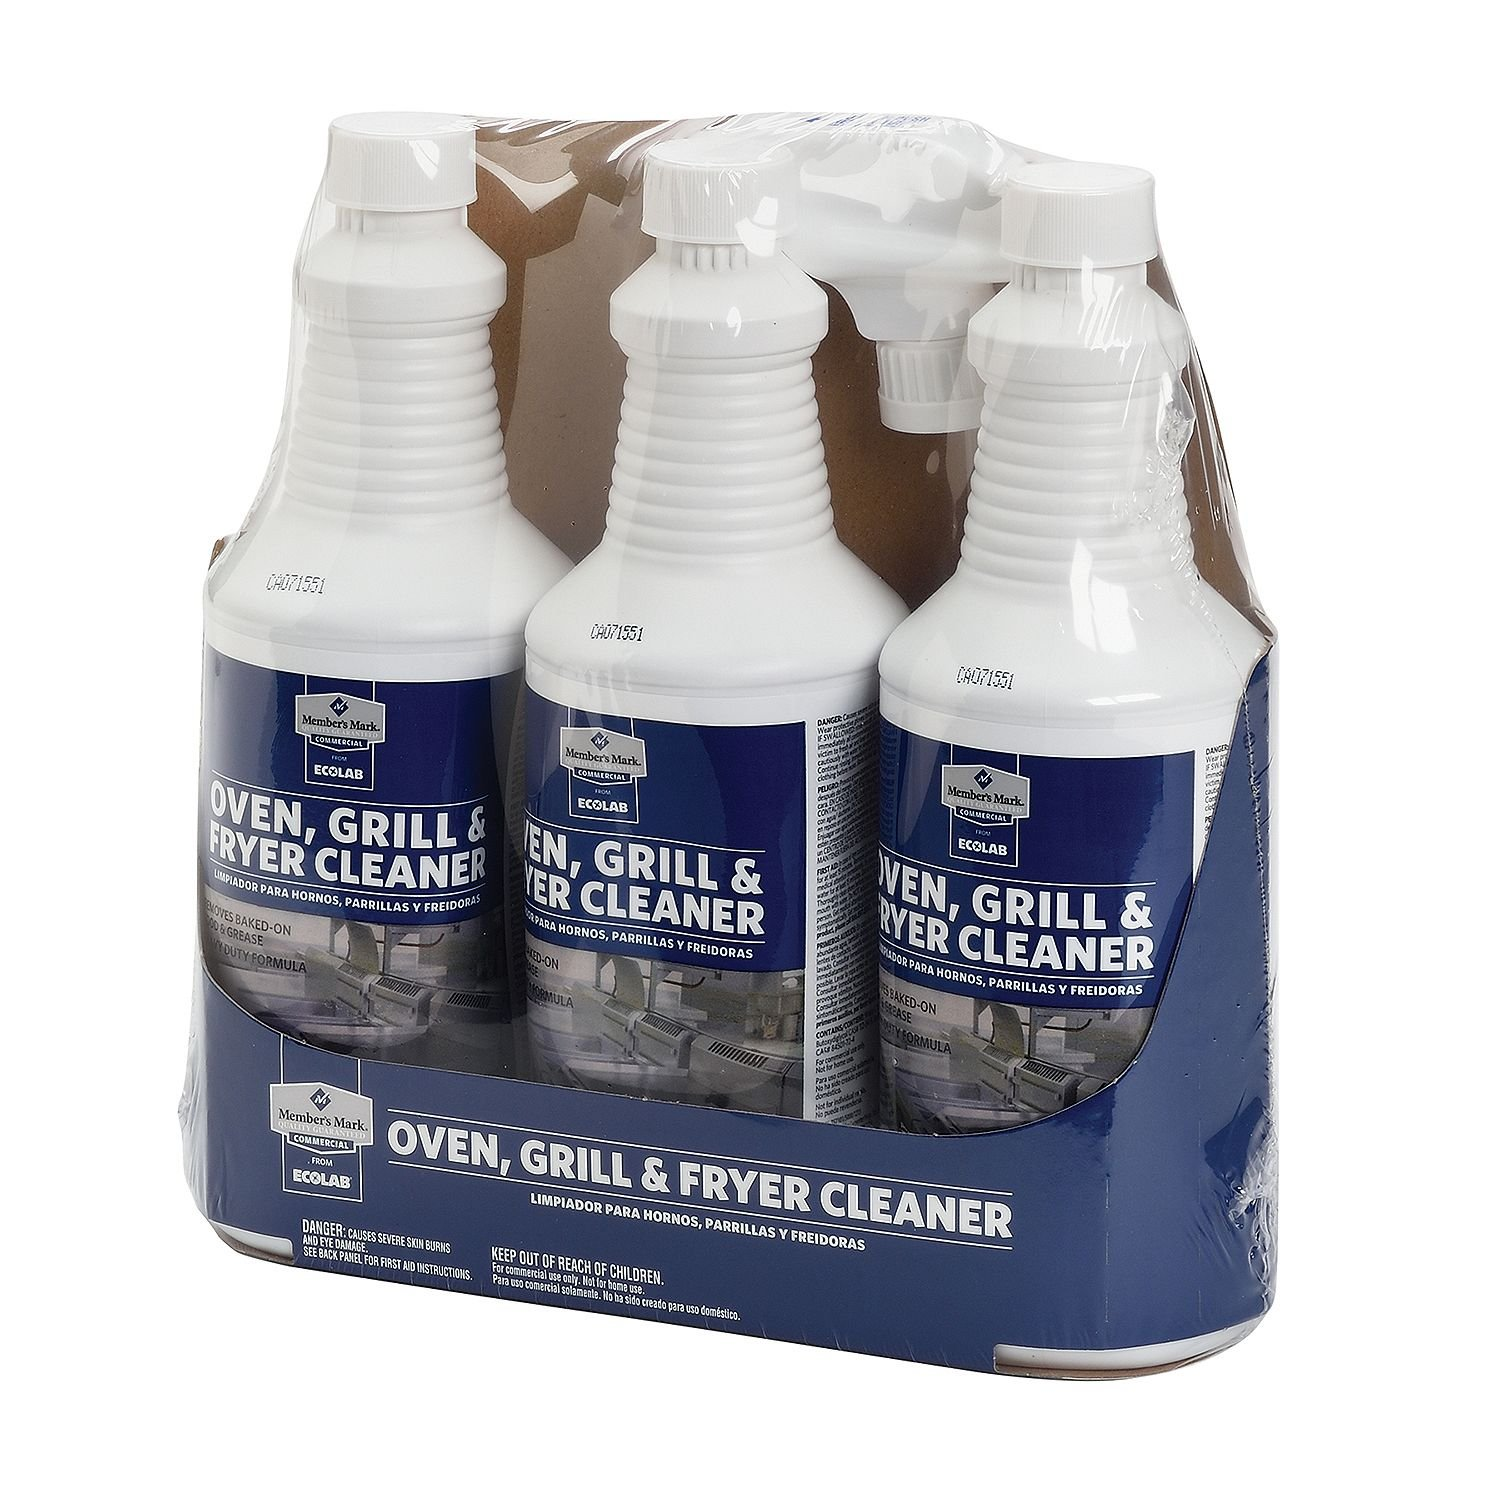 Member's Mark Oven, Grill & Fryer Cleaner - 3 bottles 32 oz each - Formerly known as Proforce by ProForce